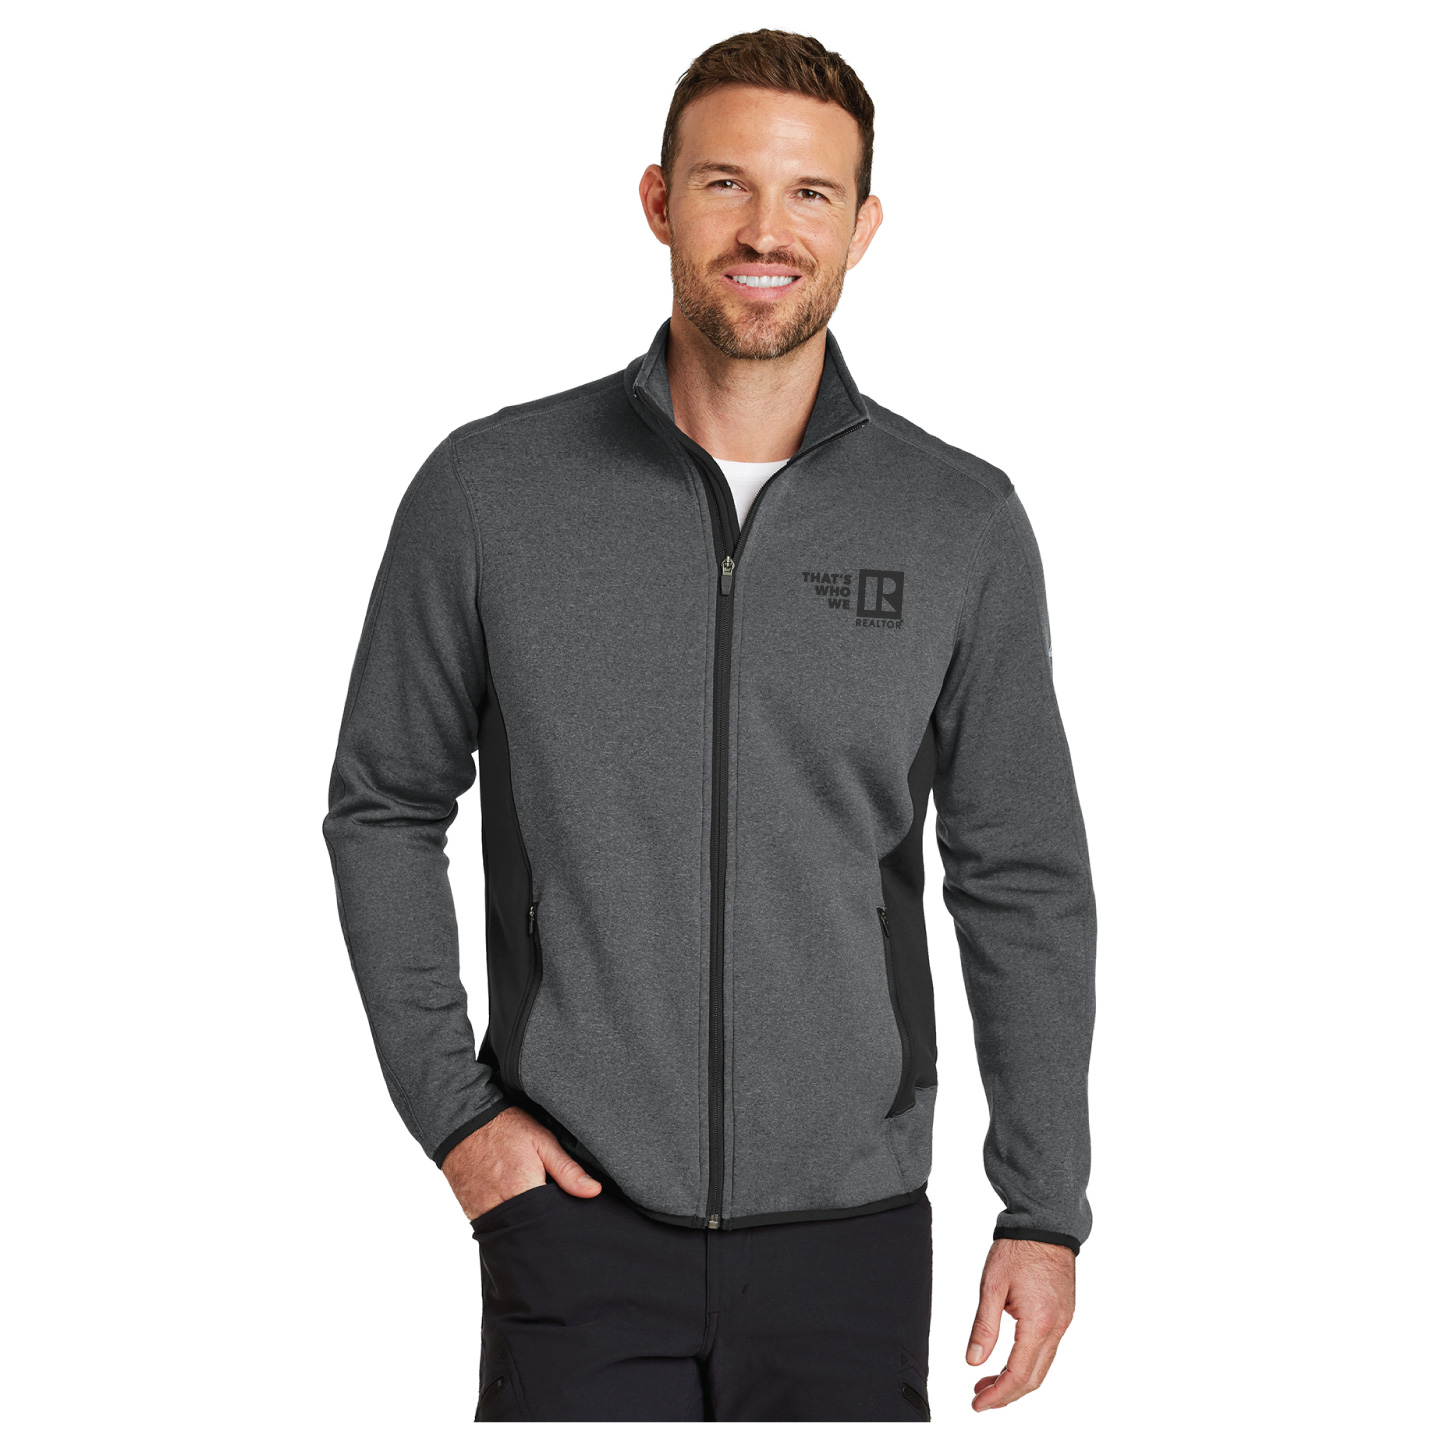 """Thats Who We R"" Mens Eddie Bauer Fleece Jacket twwr,ThatsWhoWeR,Thats,TWWR,ThatWho,ThatsWho,Twwr,Thats,Whos,We,Ares,Jacket, Thats Who, Fleece, Brand, Warm, TWWR, Gift, President, Board, Store, Association,"